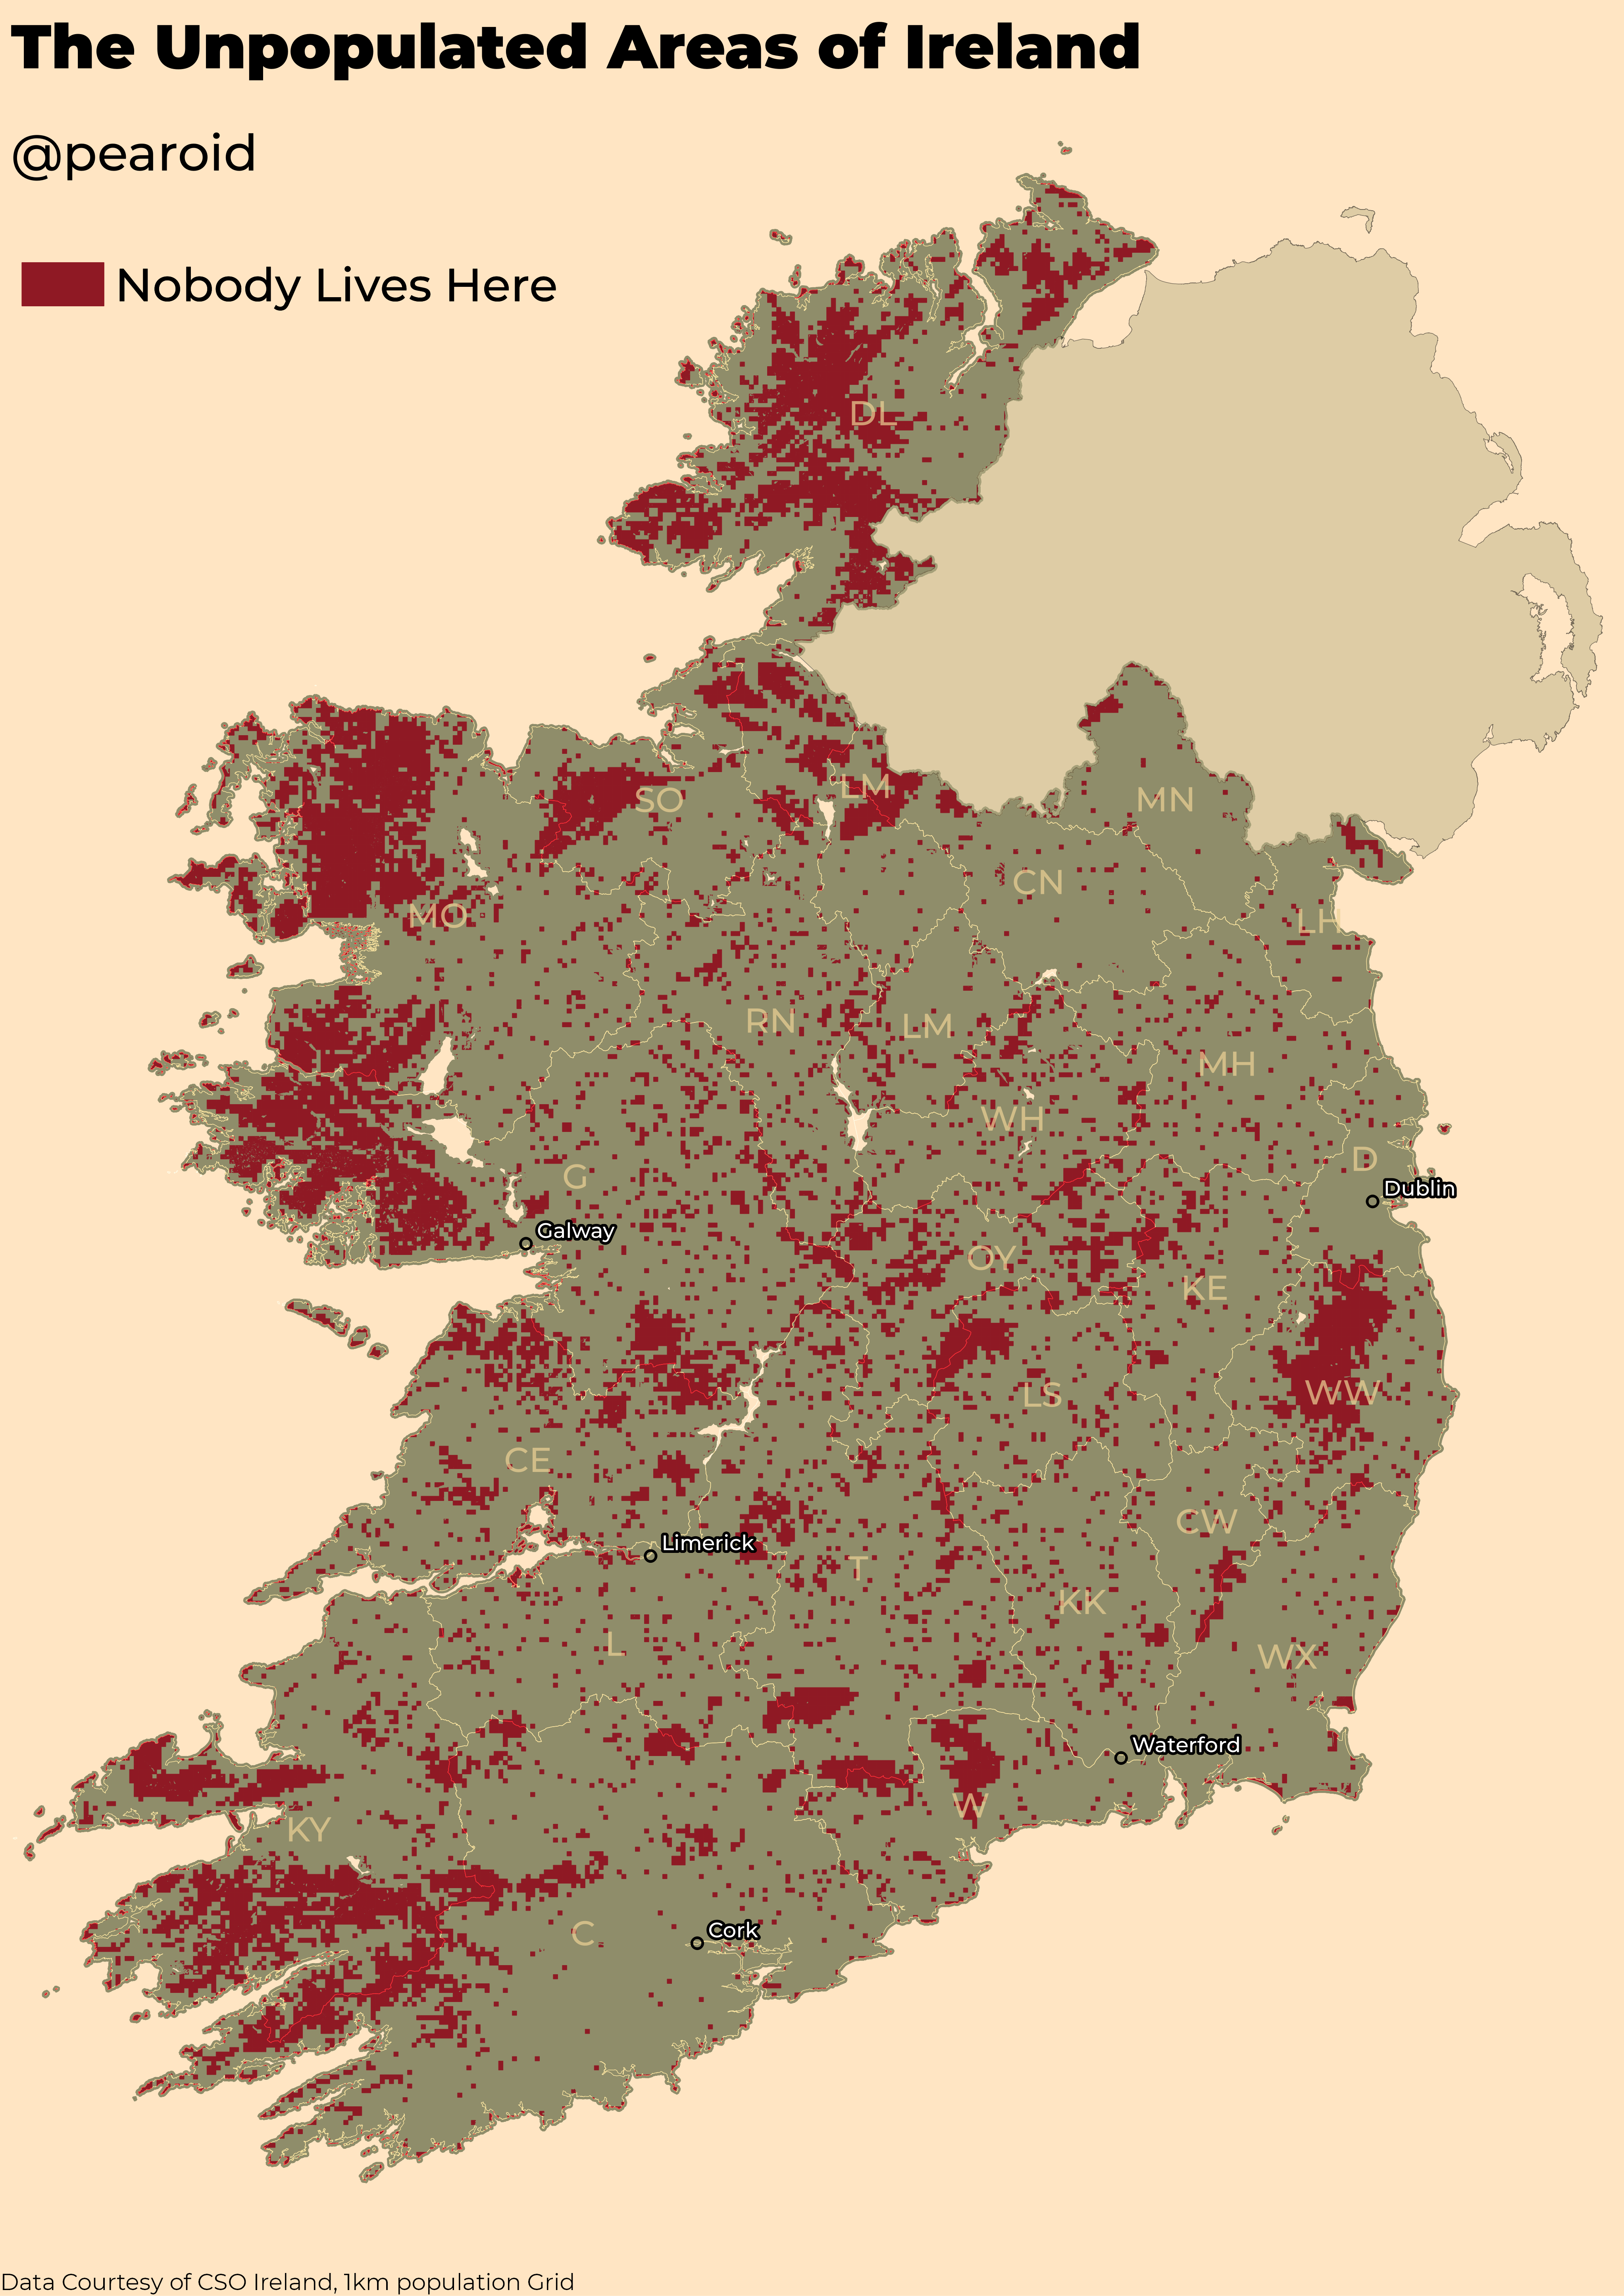 The Unpopulated Areas of Ireland